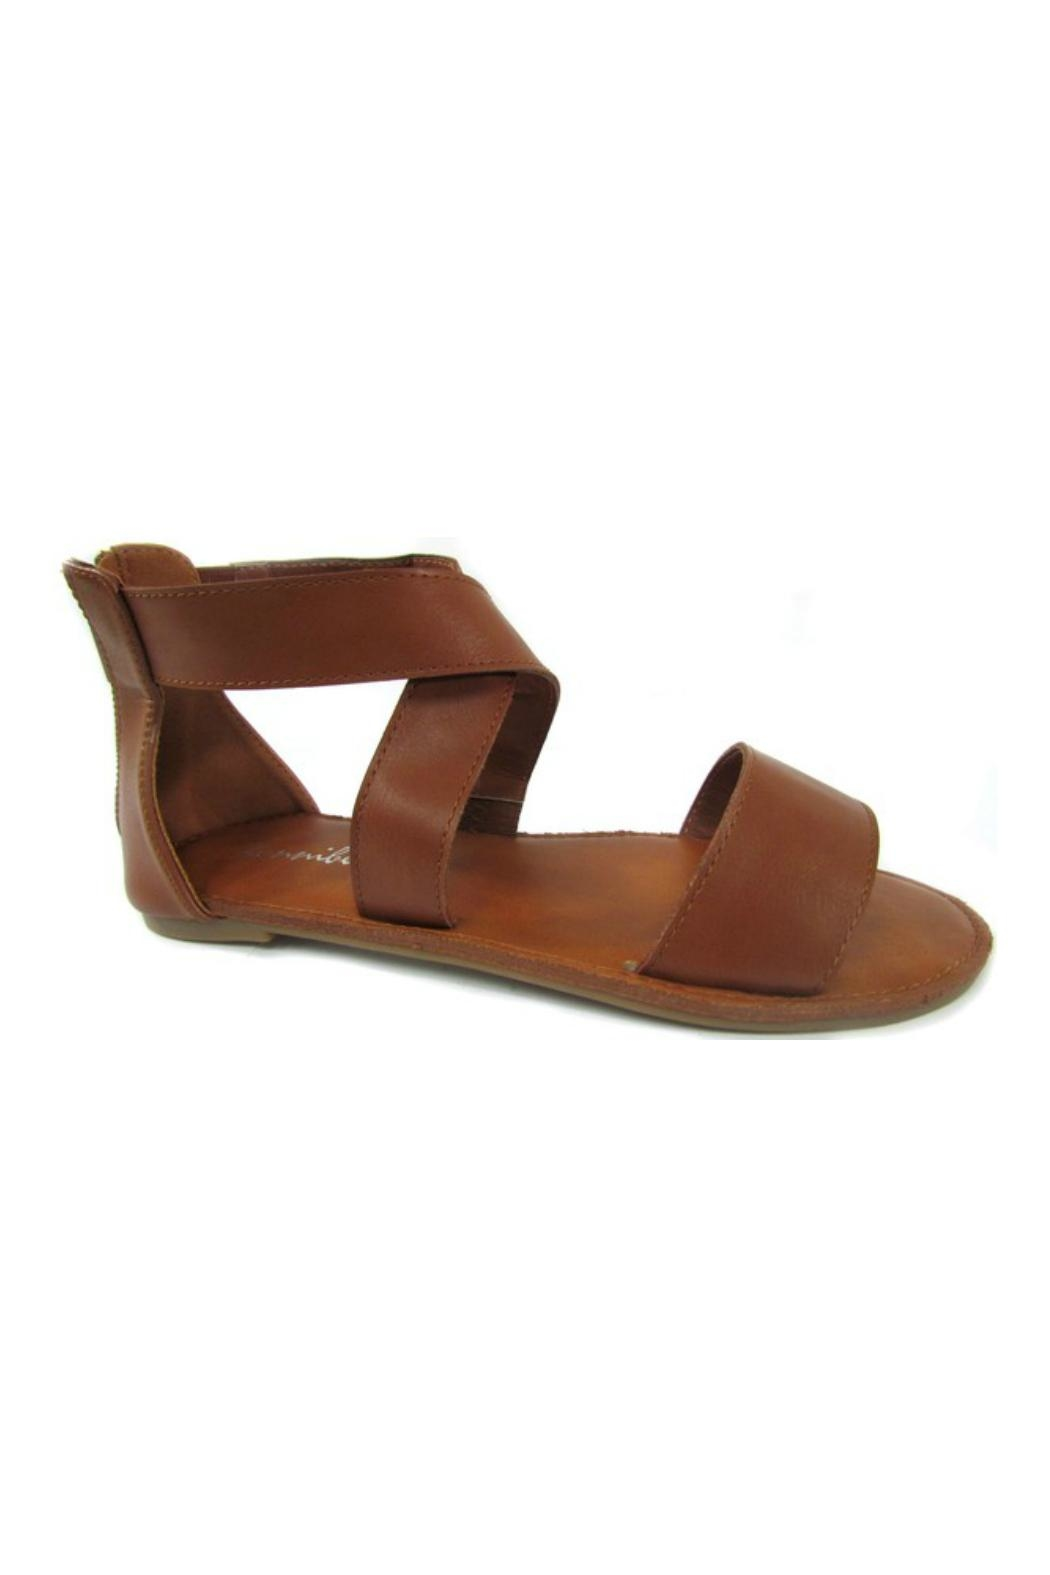 Bowie Accessories Brown Cross Strap Sandal - Front Full Image